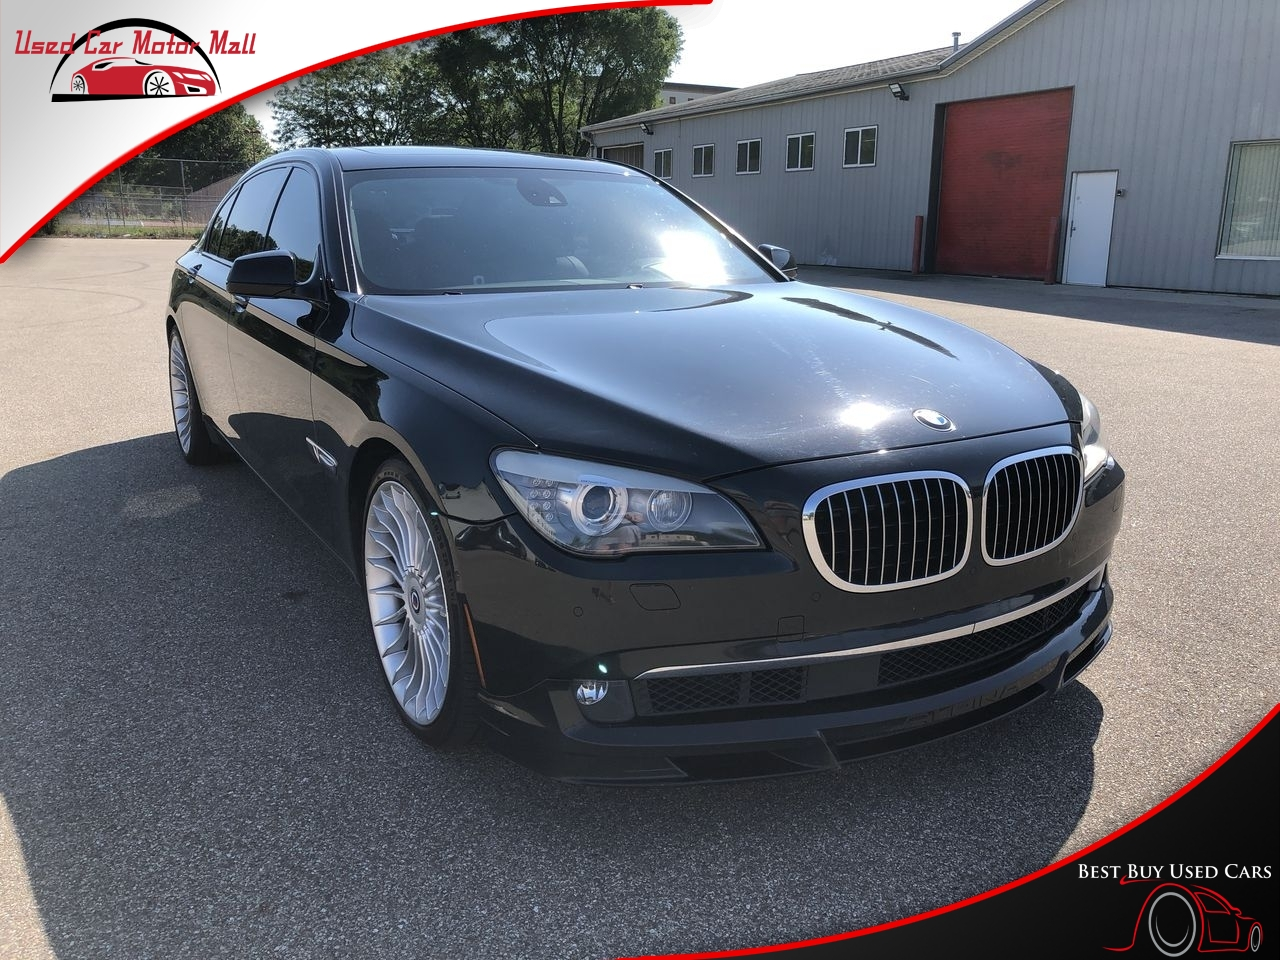 2012 BMW 7 Series ALPINA B7 LWB